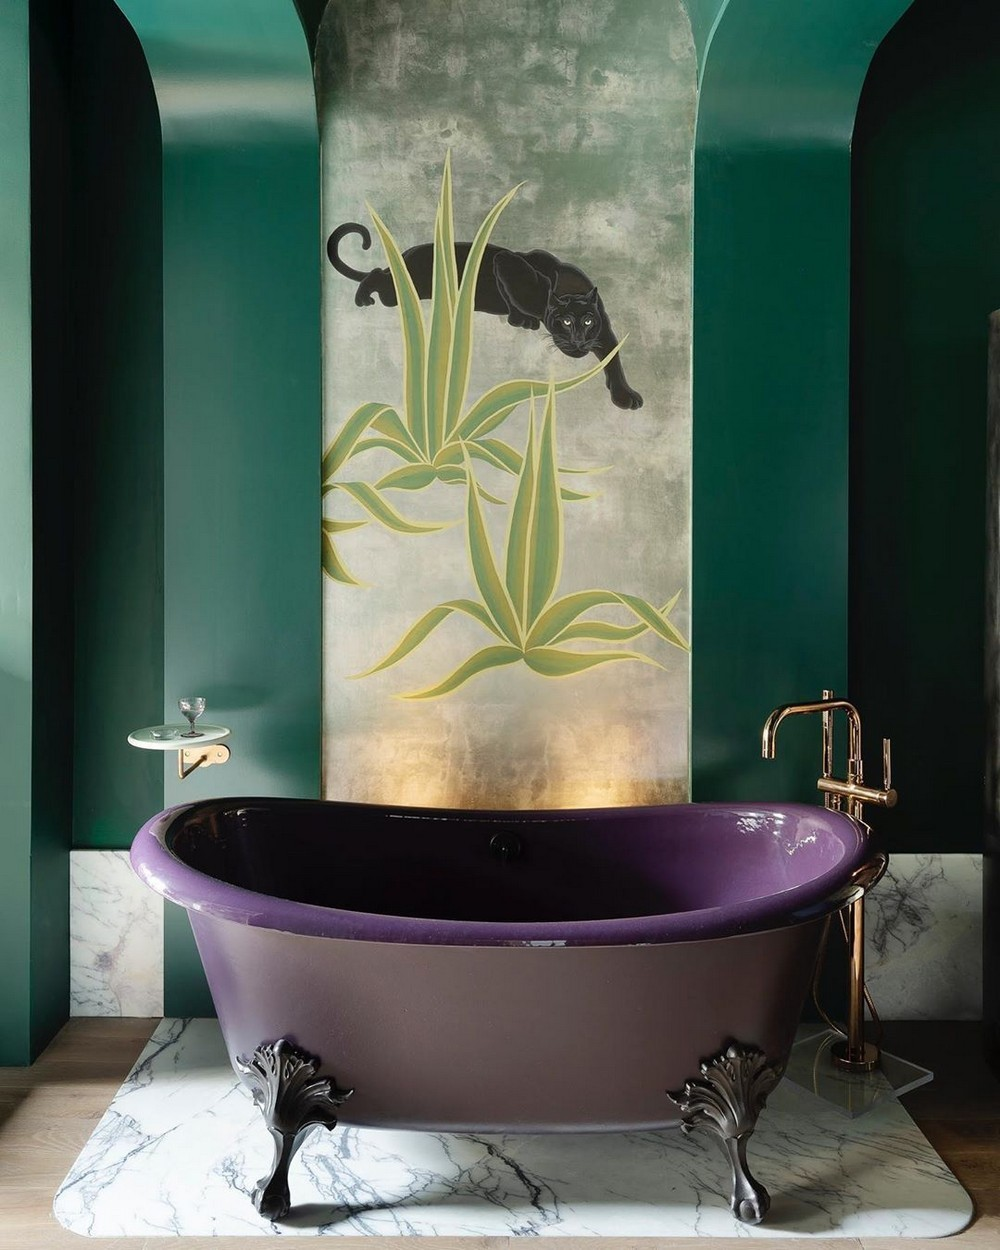 Bathroom Ideas How to Give A Riveting Yet Timeless Vibe to Your Decor 3 bathroom ideas Bathroom Ideas: How to Give A Riveting Yet Timeless Vibe to Your Decor Bathroom Ideas How to Give A Riveting Yet Timeless Vibe to Your Decor 3